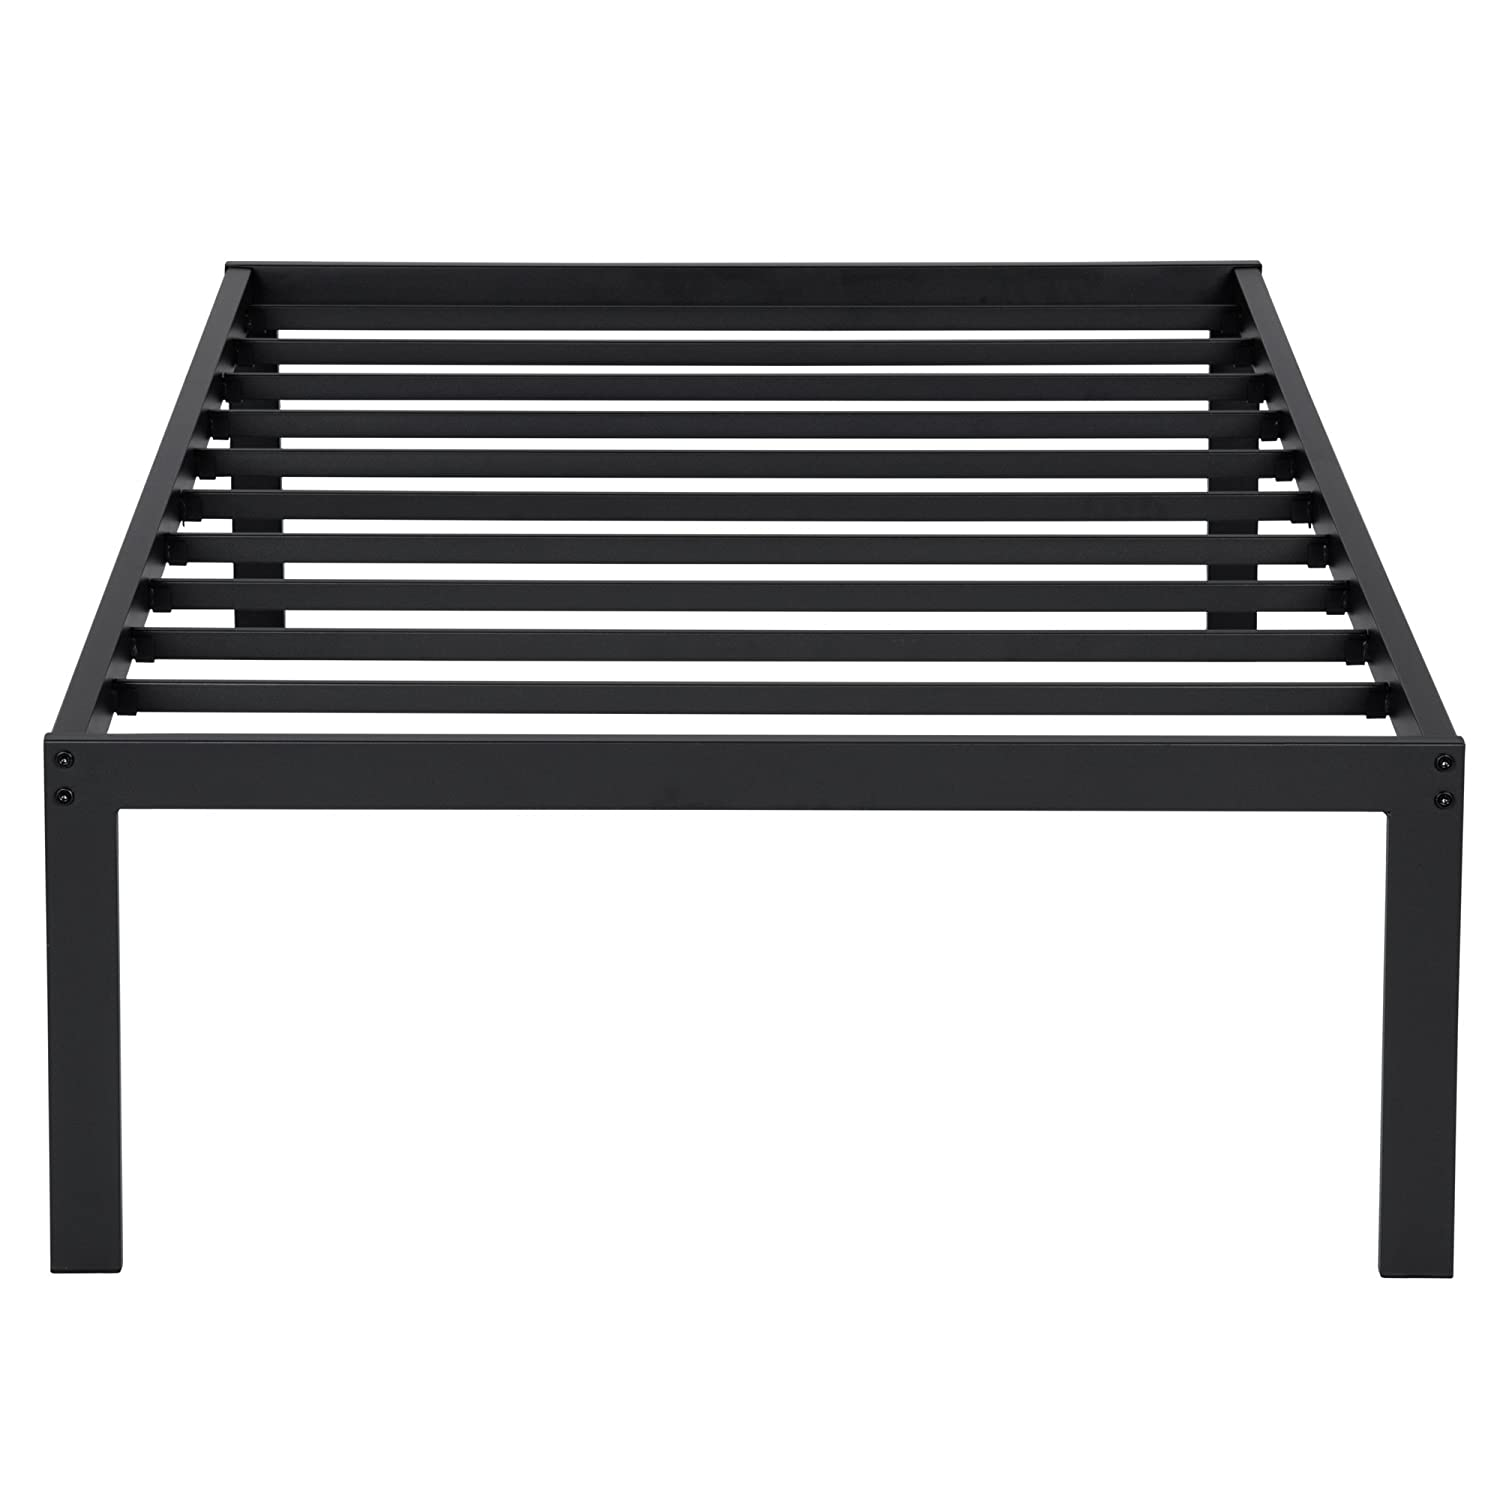 Olee Sleep Bed Frame, Black